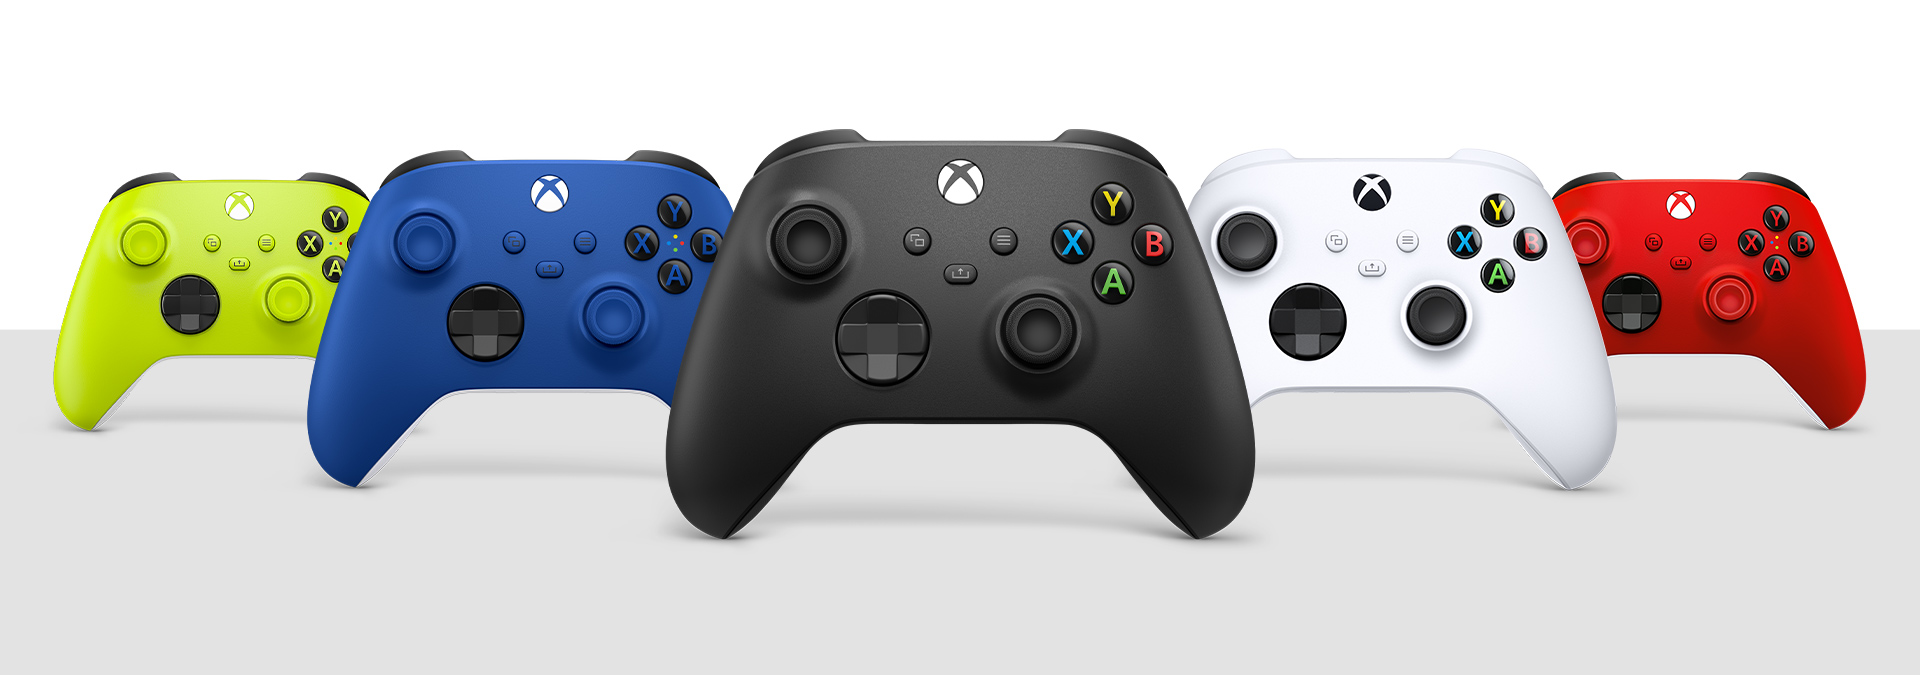 Xbox Wireless Controller Carbon Black, Robot White, Shock Blue, Pulse Red and Electric Volt